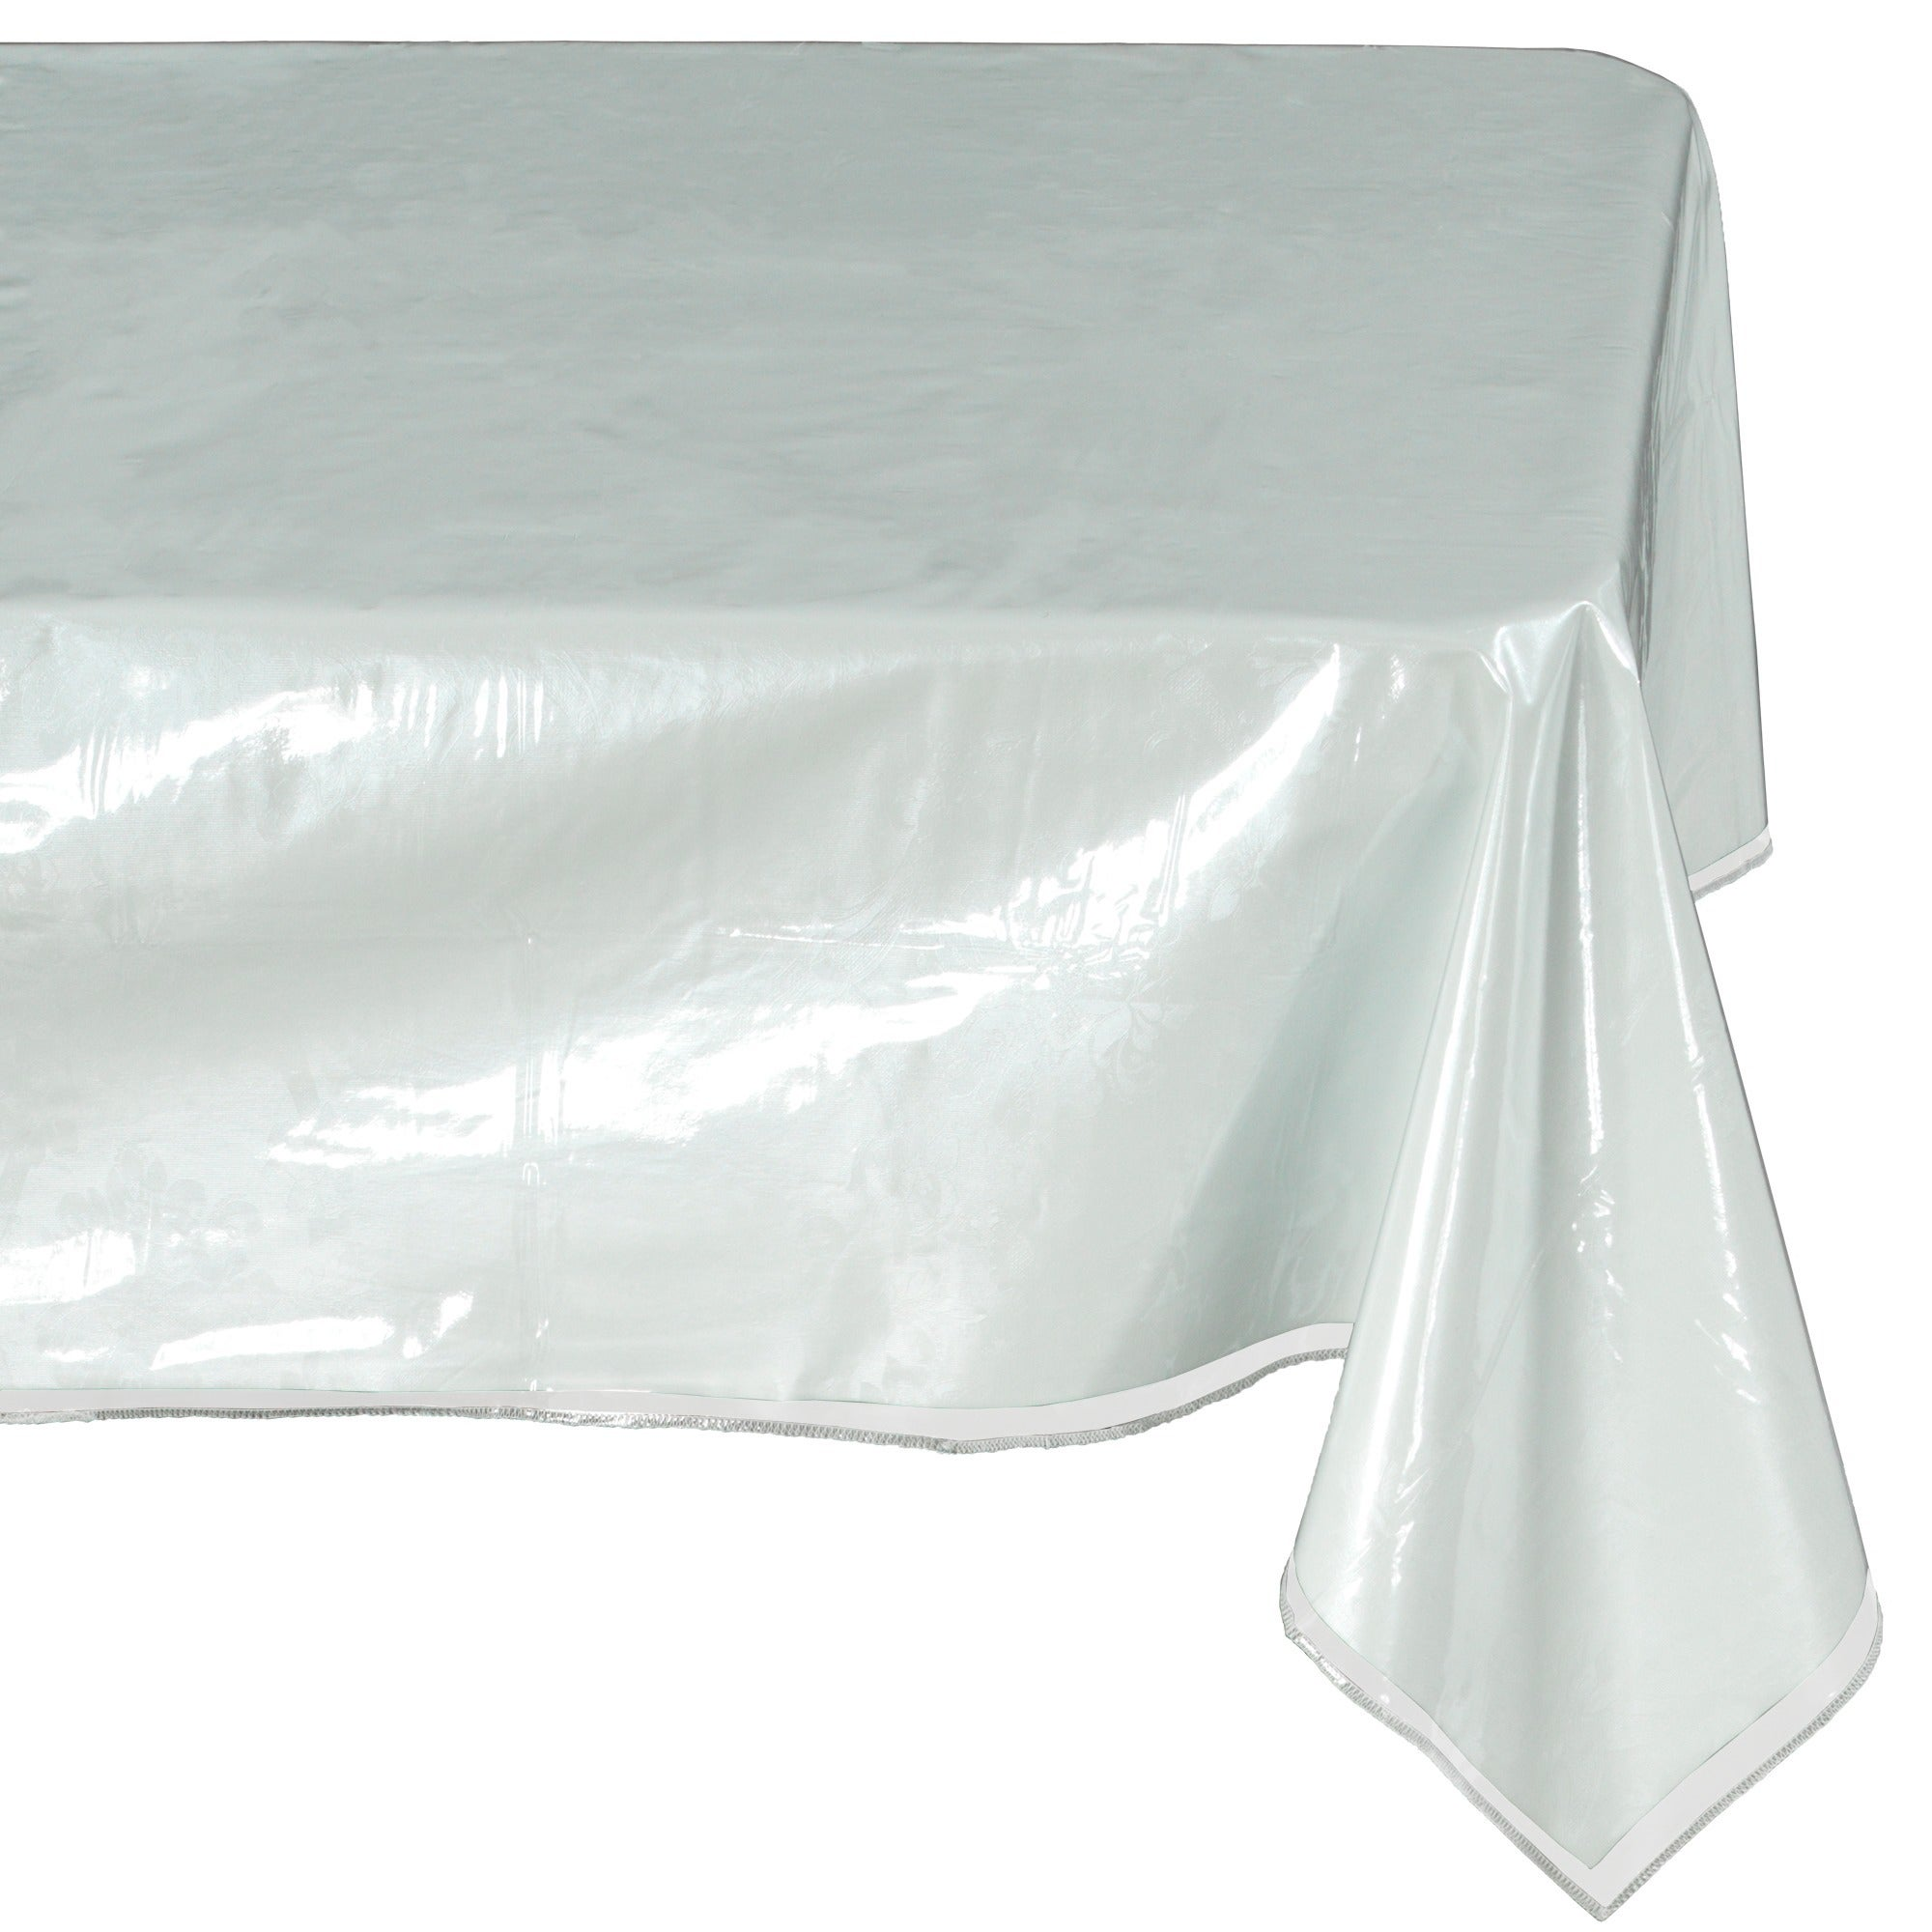 Wipe Clean Tablecloth Protector Heavy Duty Glass Clear PVC Vinyl Table Cover